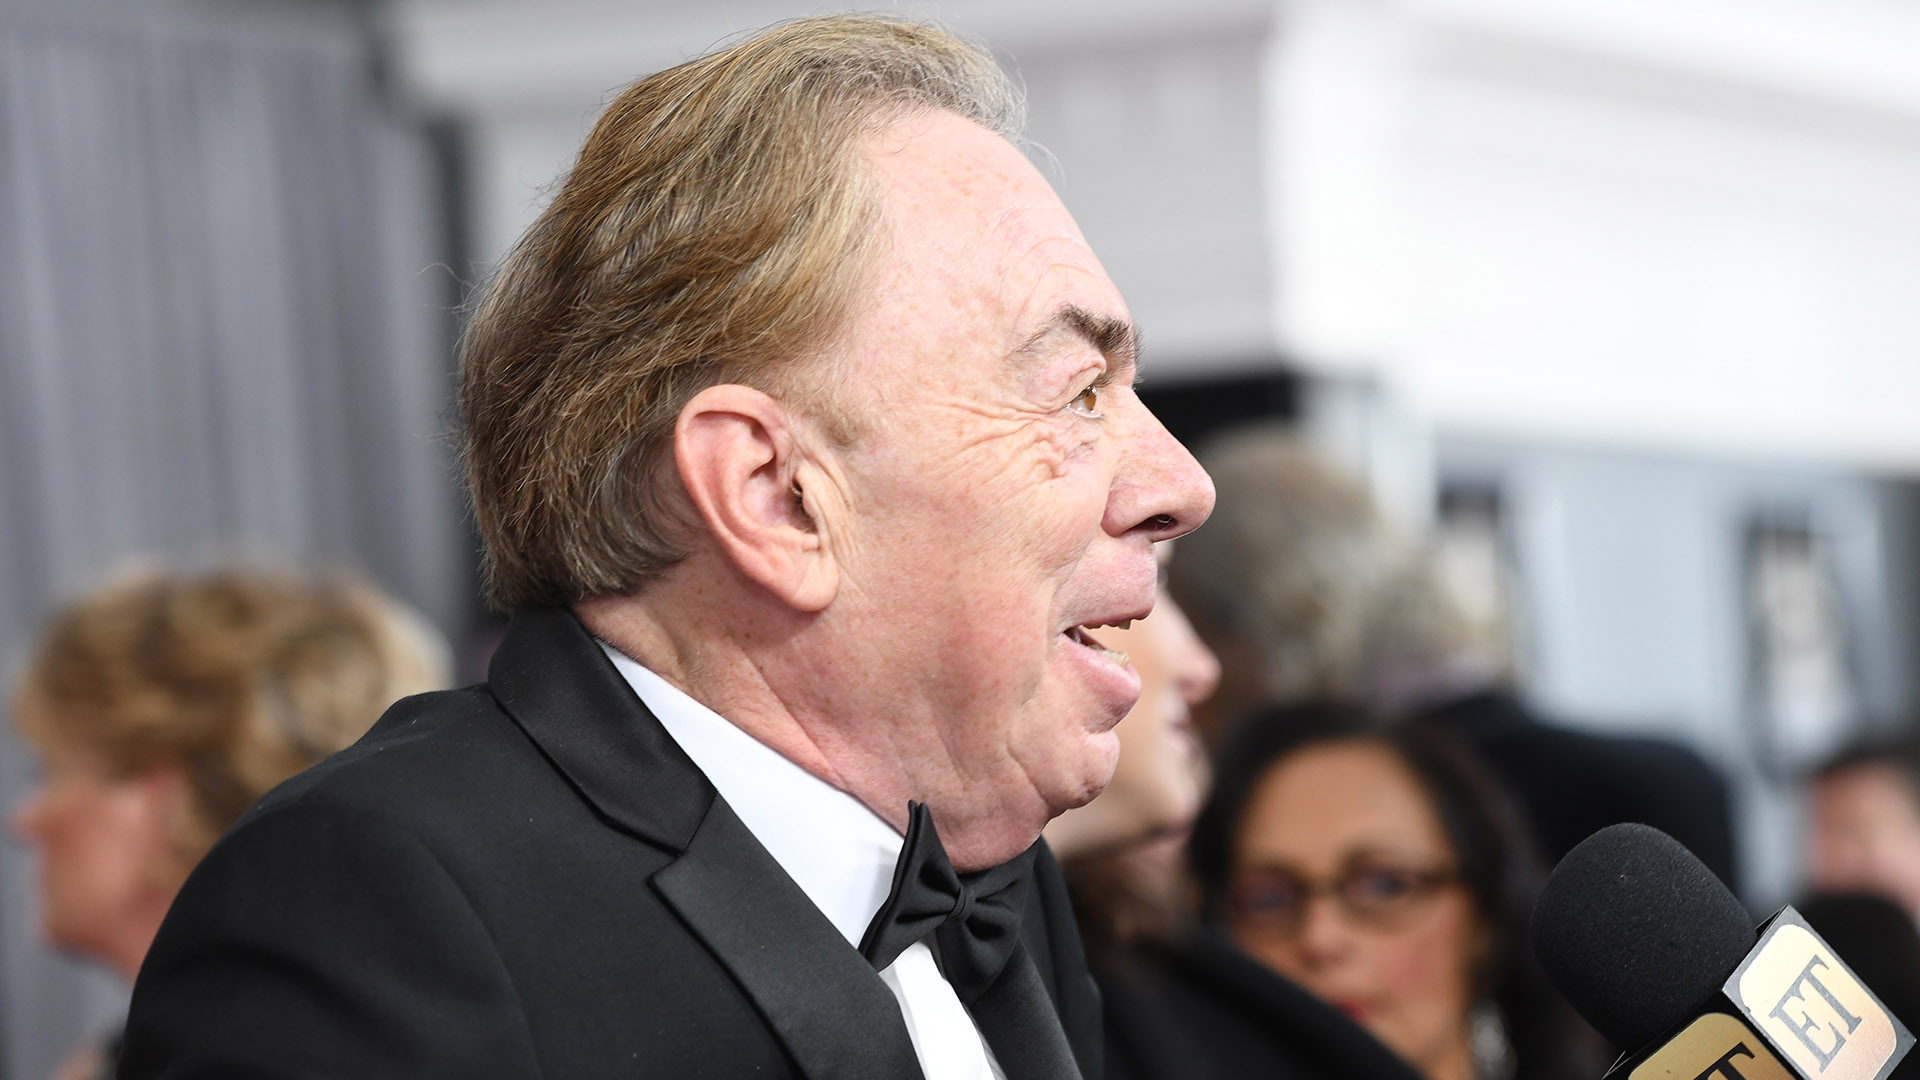 Famed composer Andrew Lloyd Webber stops to speak with Entertainment Tonight before heading into Madison Square Garden.